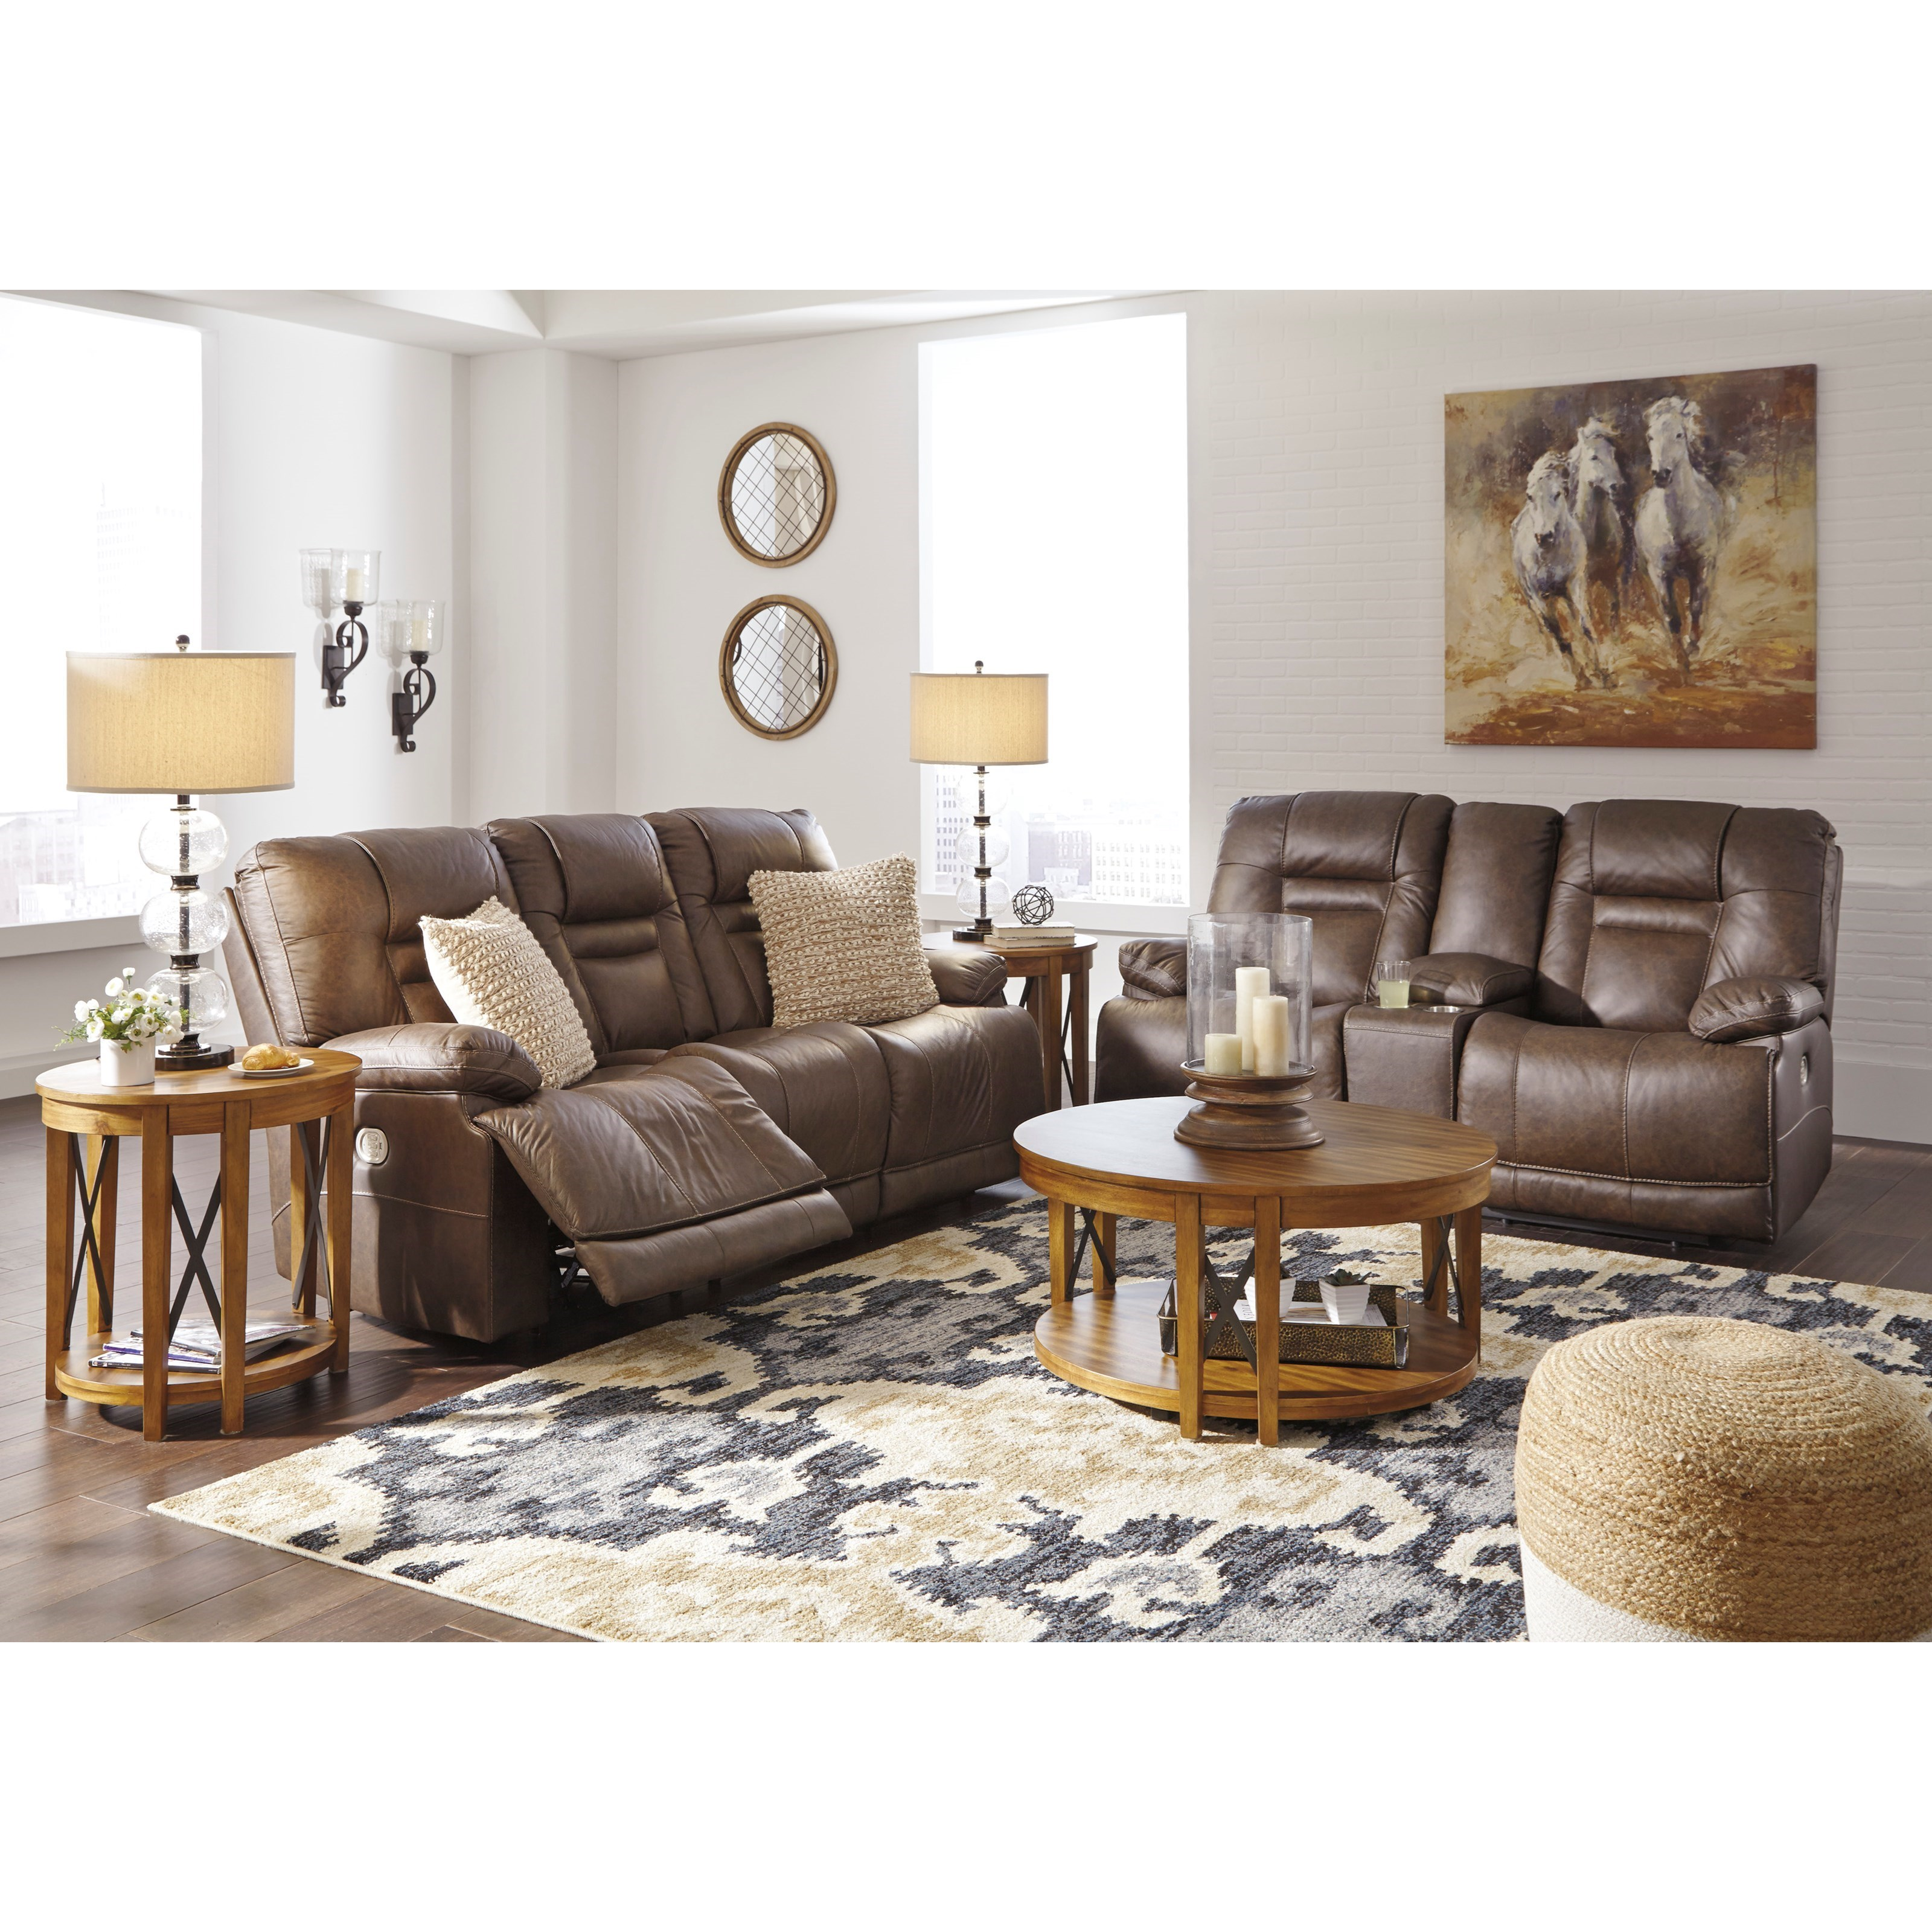 Wurstrow Reclining Living Room Group by Signature Design by Ashley at Factory Direct Furniture